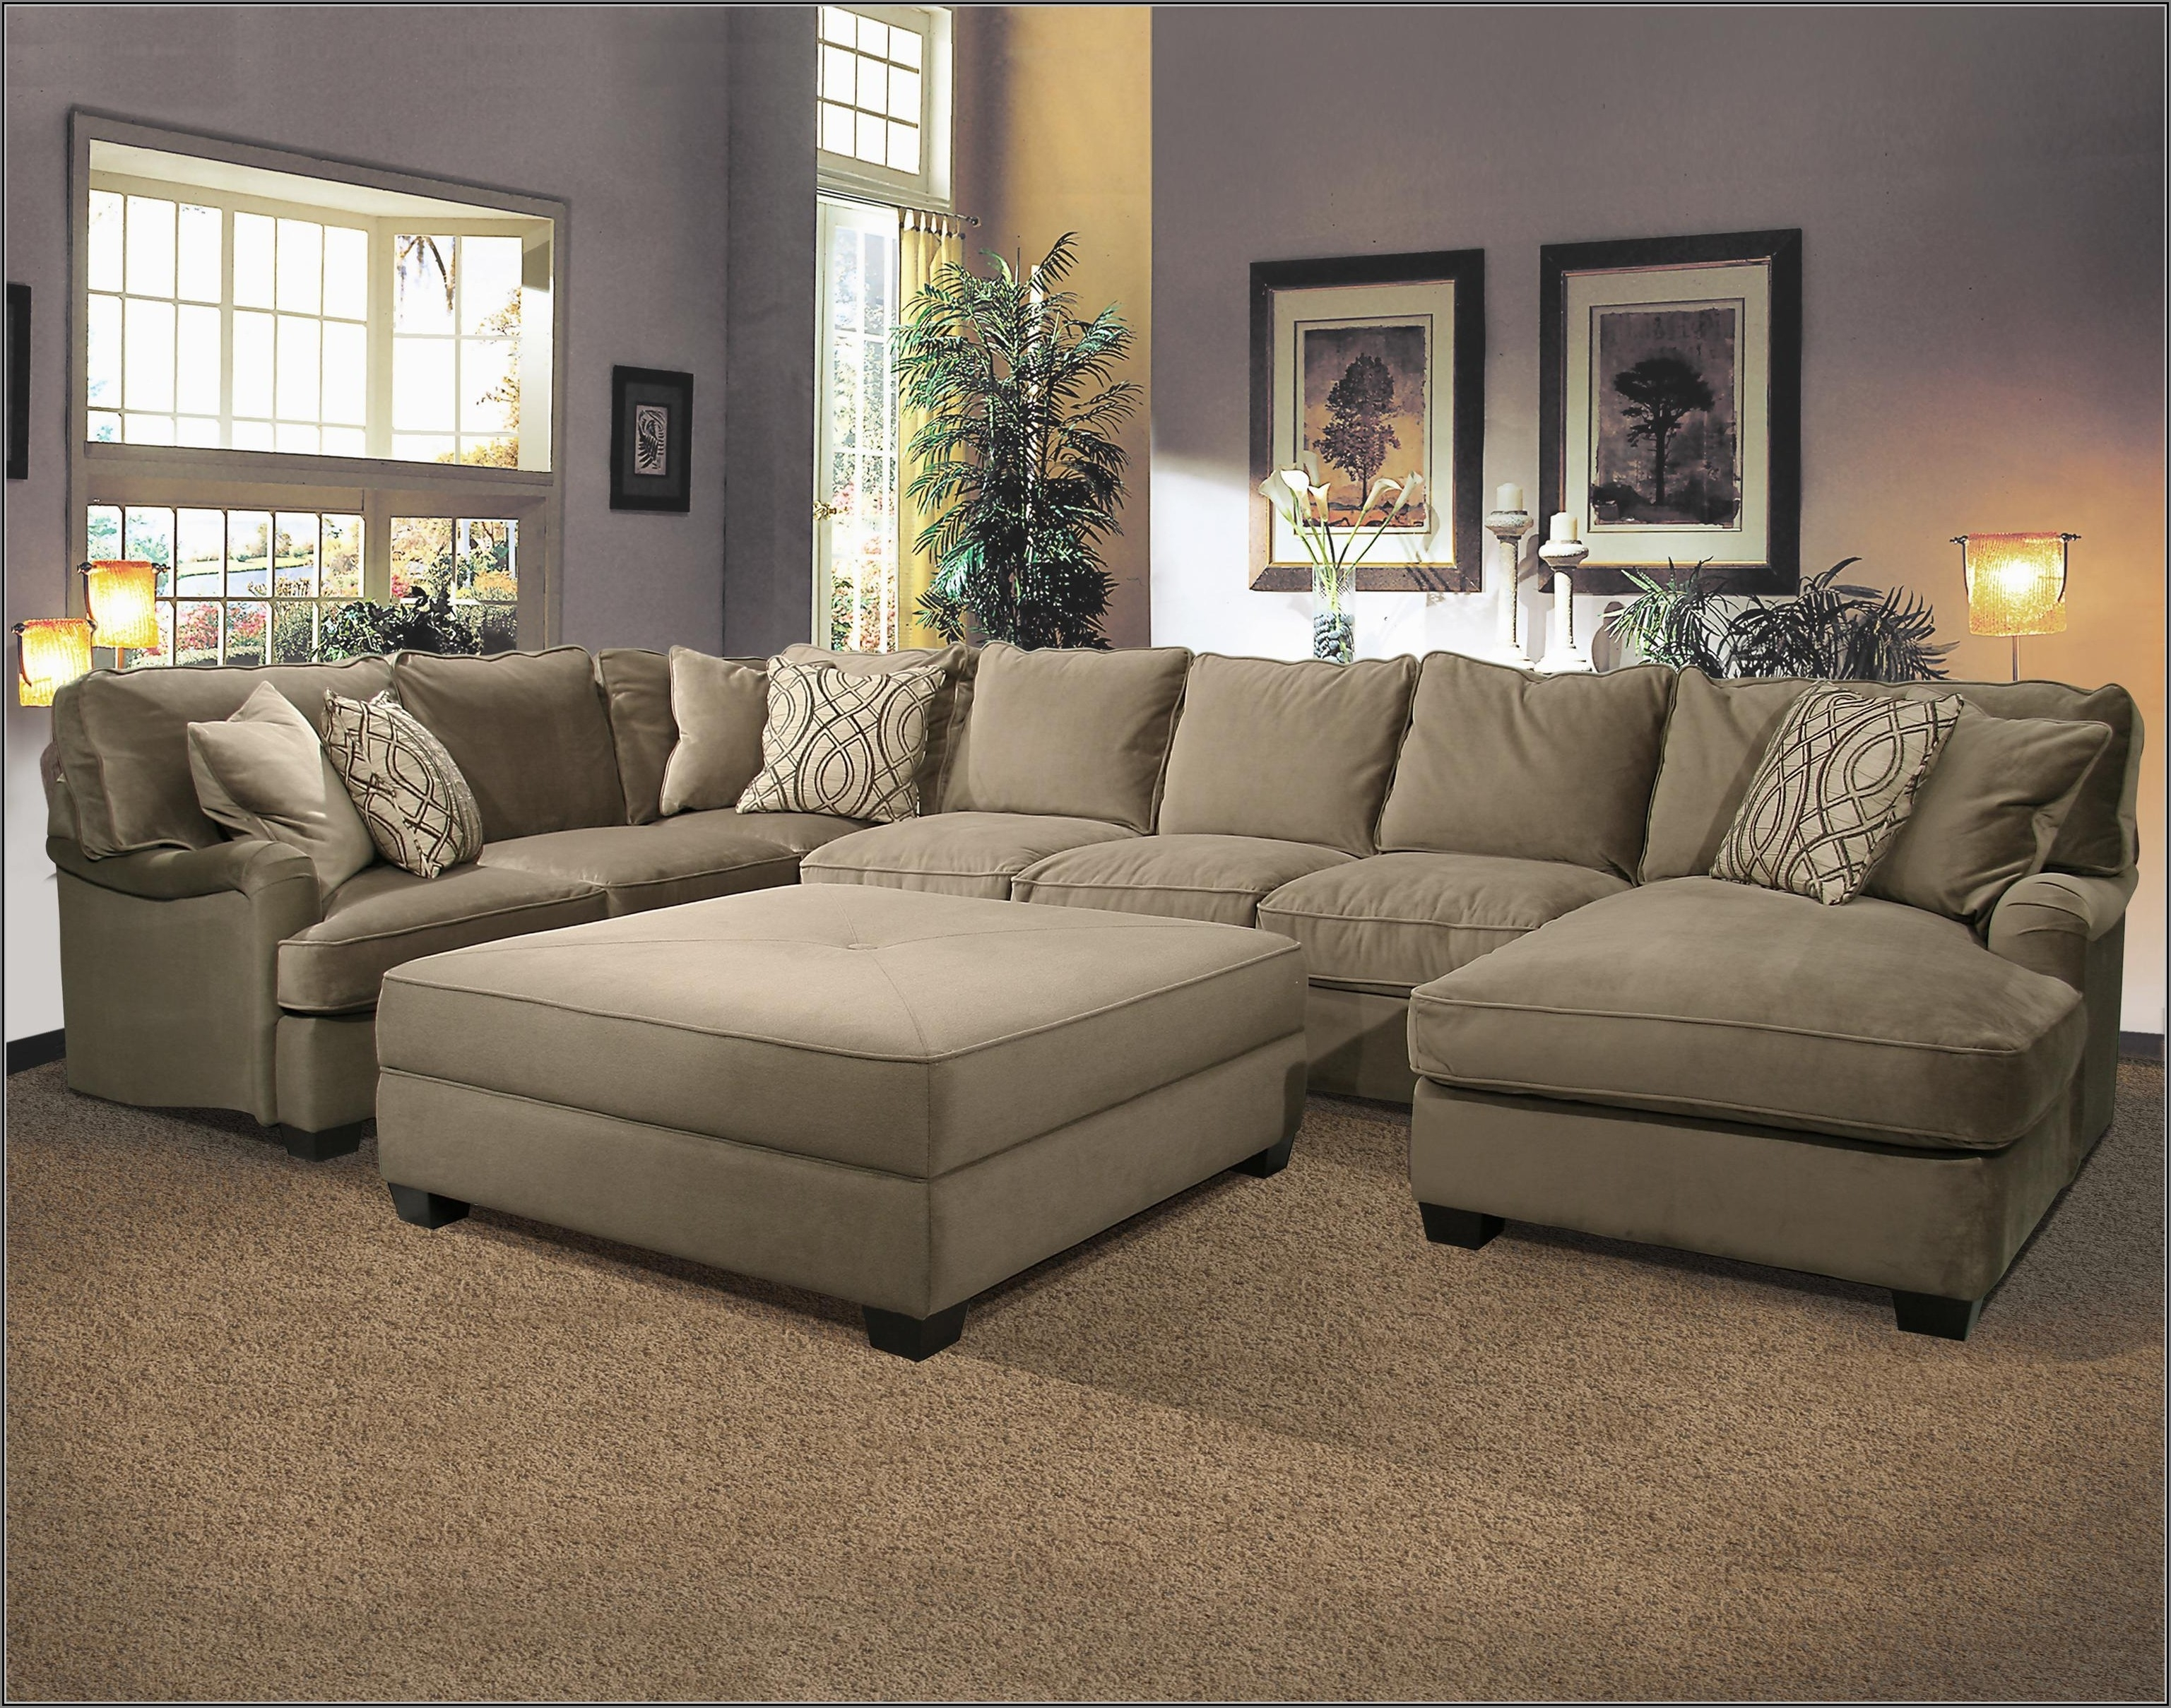 Epic Large Fabric Sectional Sofas 21 On 3 Piece Sectional Sleeper Throughout 3 Piece Sectional Sleeper Sofas (Photo 7 of 10)